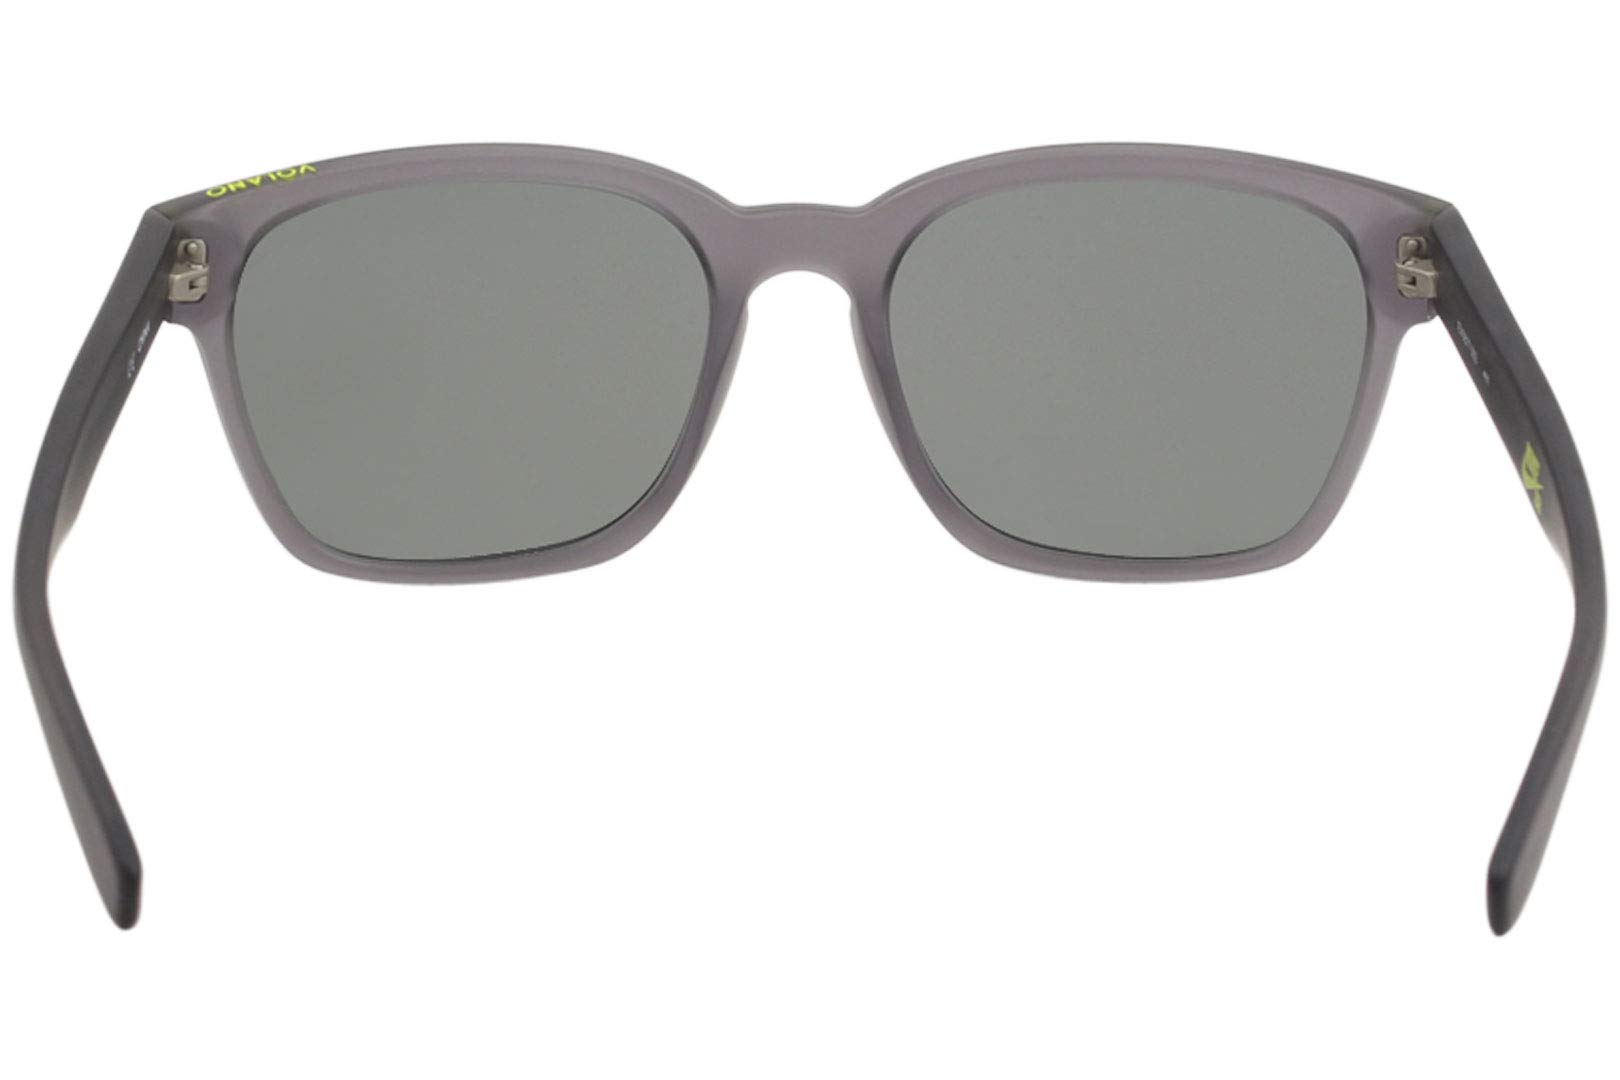 Nike EV0877-003 Volano Sunglasses (One Size), Matte Crystal Grey/Cyber, Grey Lens by Nike (Image #4)